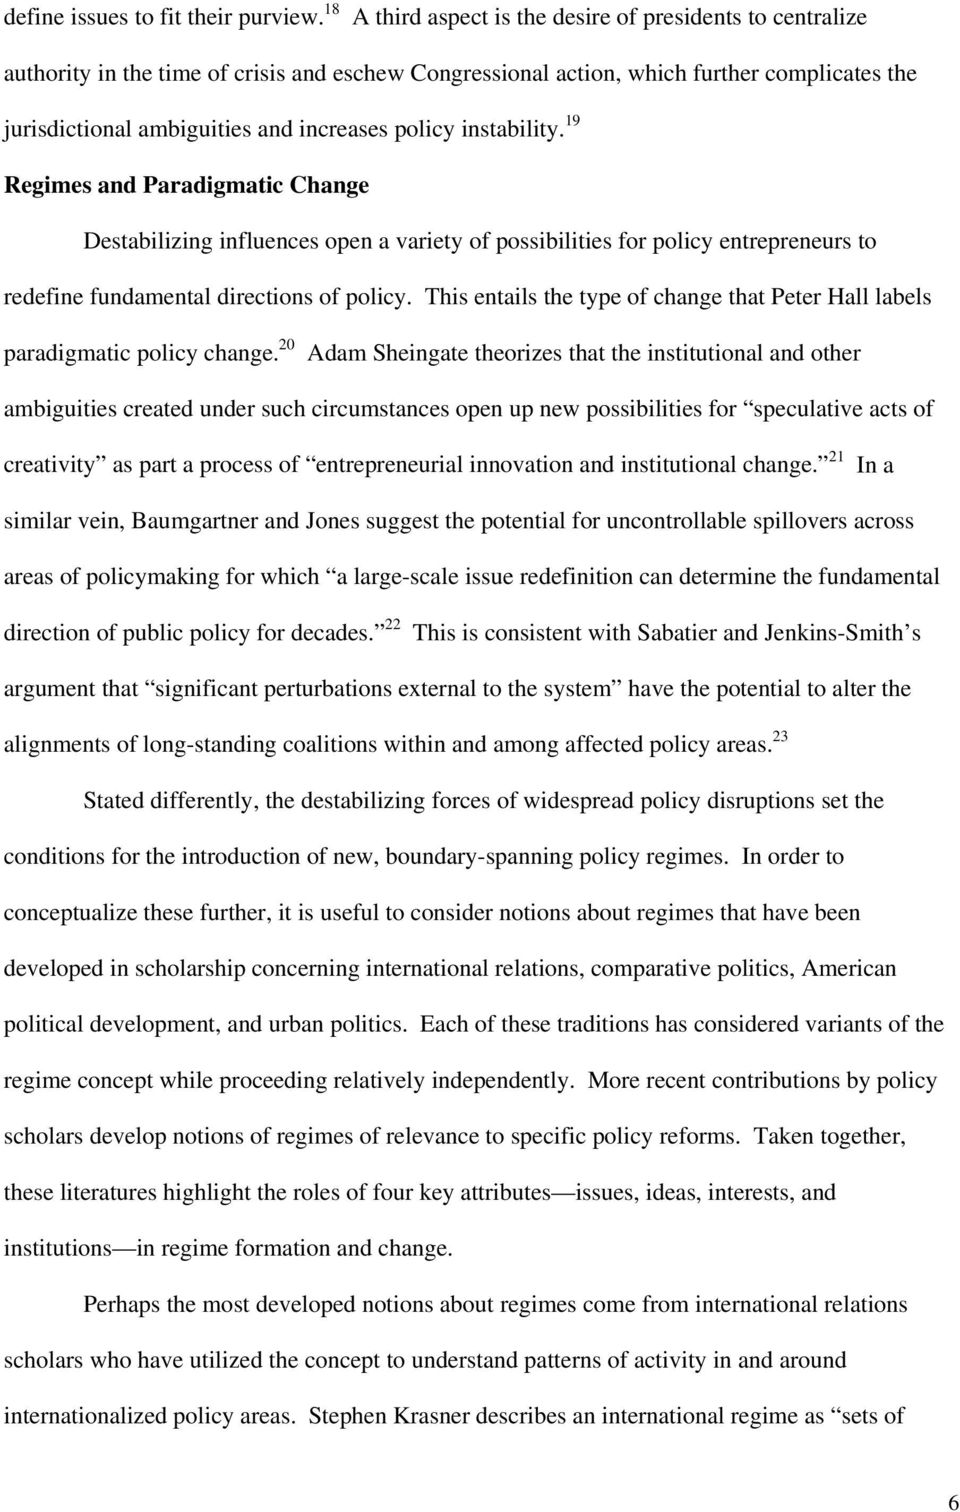 policy instability. 19 Regimes and Paradigmatic Change Destabilizing influences open a variety of possibilities for policy entrepreneurs to redefine fundamental directions of policy.